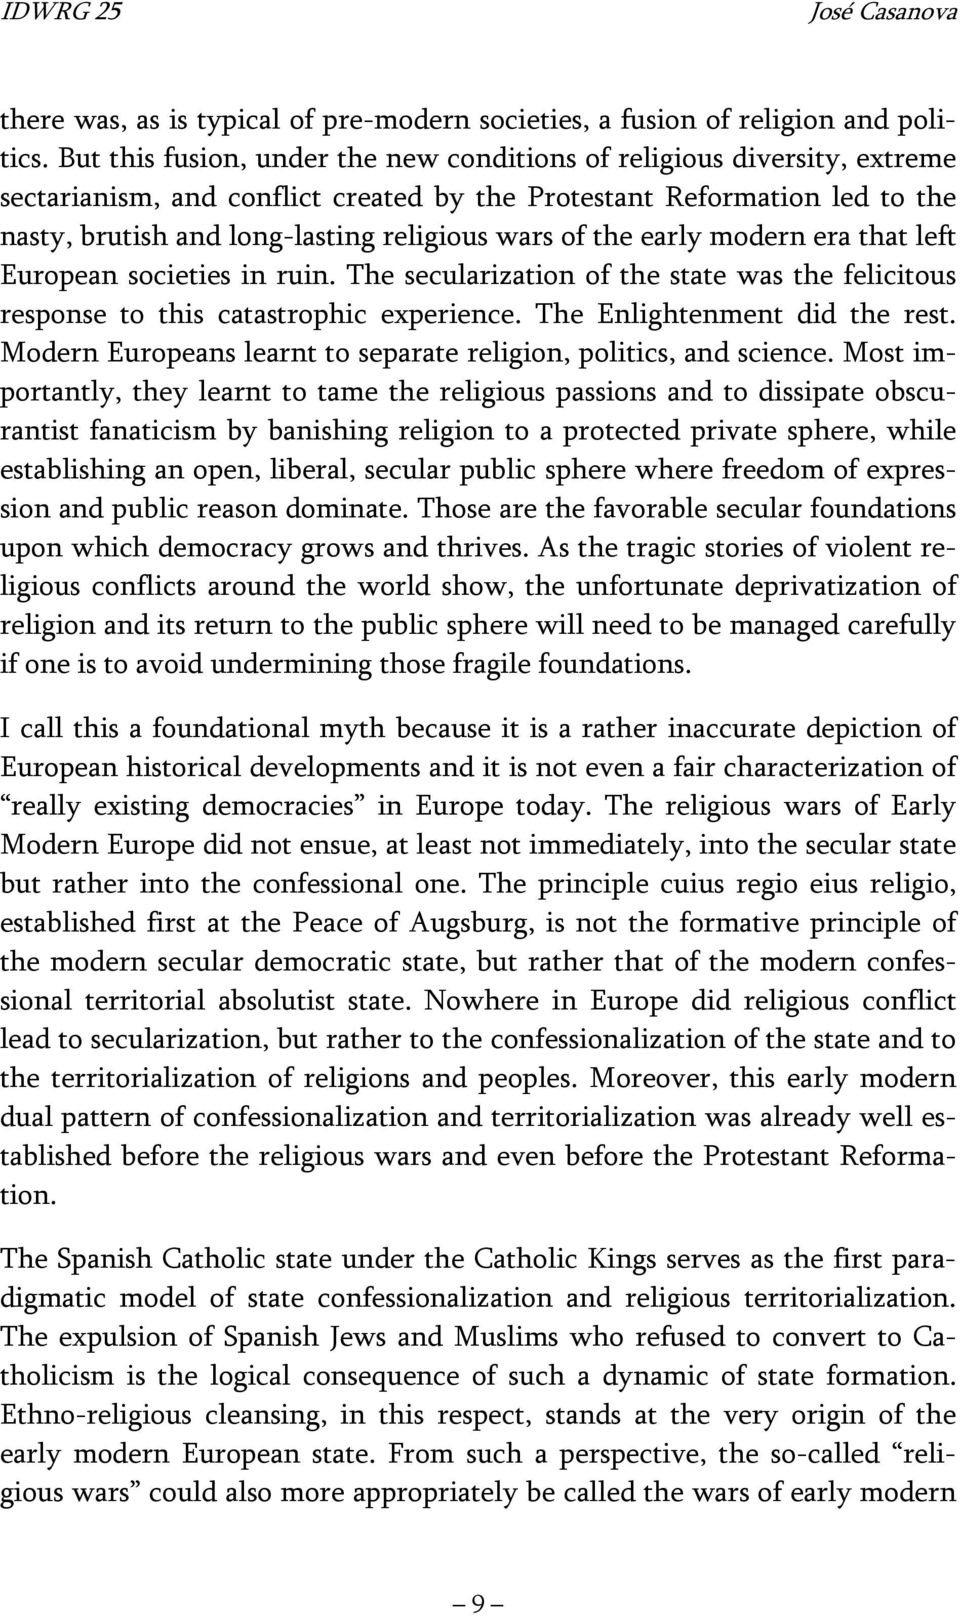 the early modern era that left European societies in ruin. The secularization of the state was the felicitous response to this catastrophic experience. The Enlightenment did the rest.